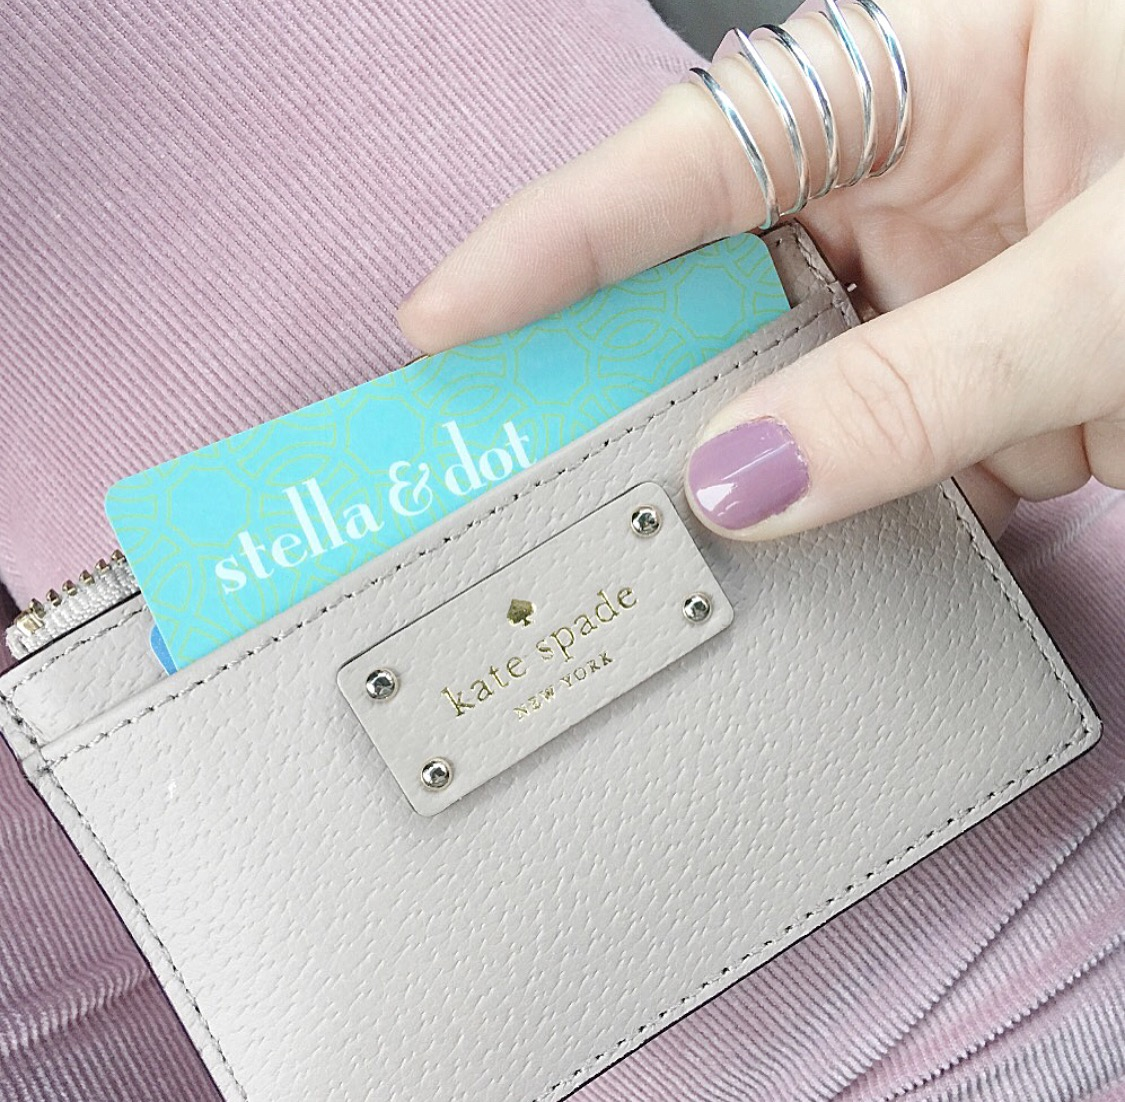 Product Pusher: Confessions of a Stella & DotStylist